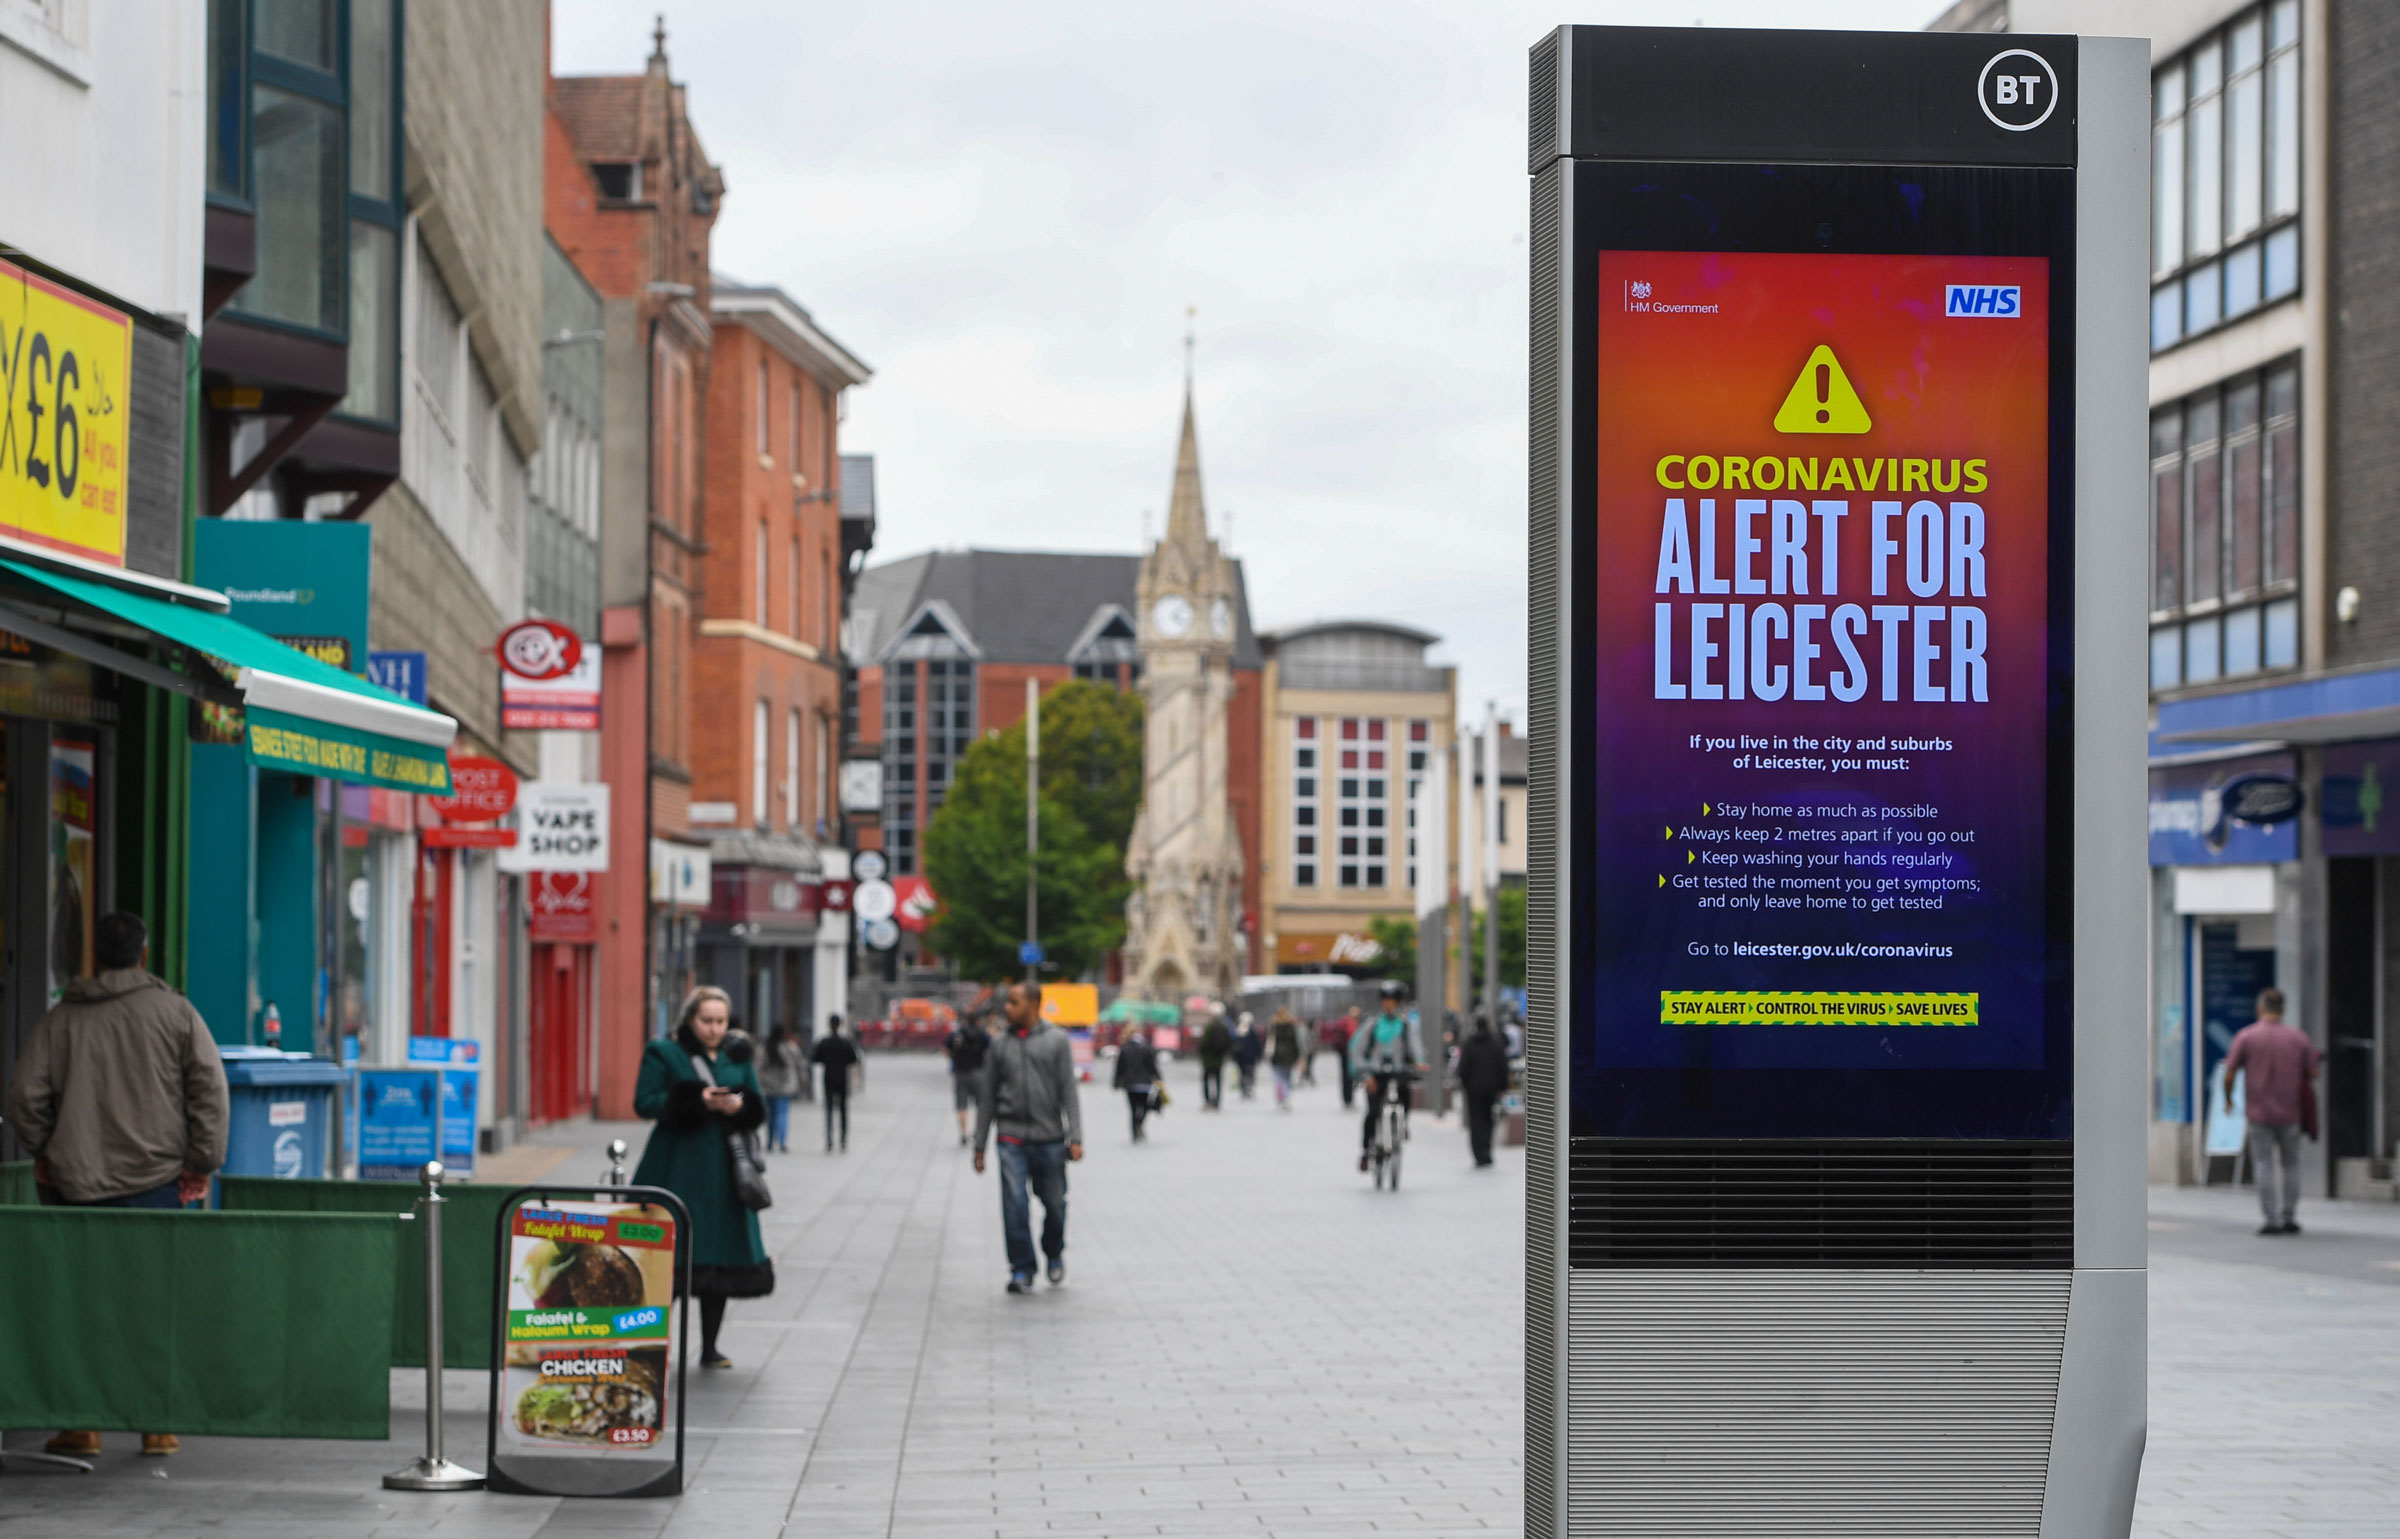 Restrictions have been in place in Leicester, England, since June 29.